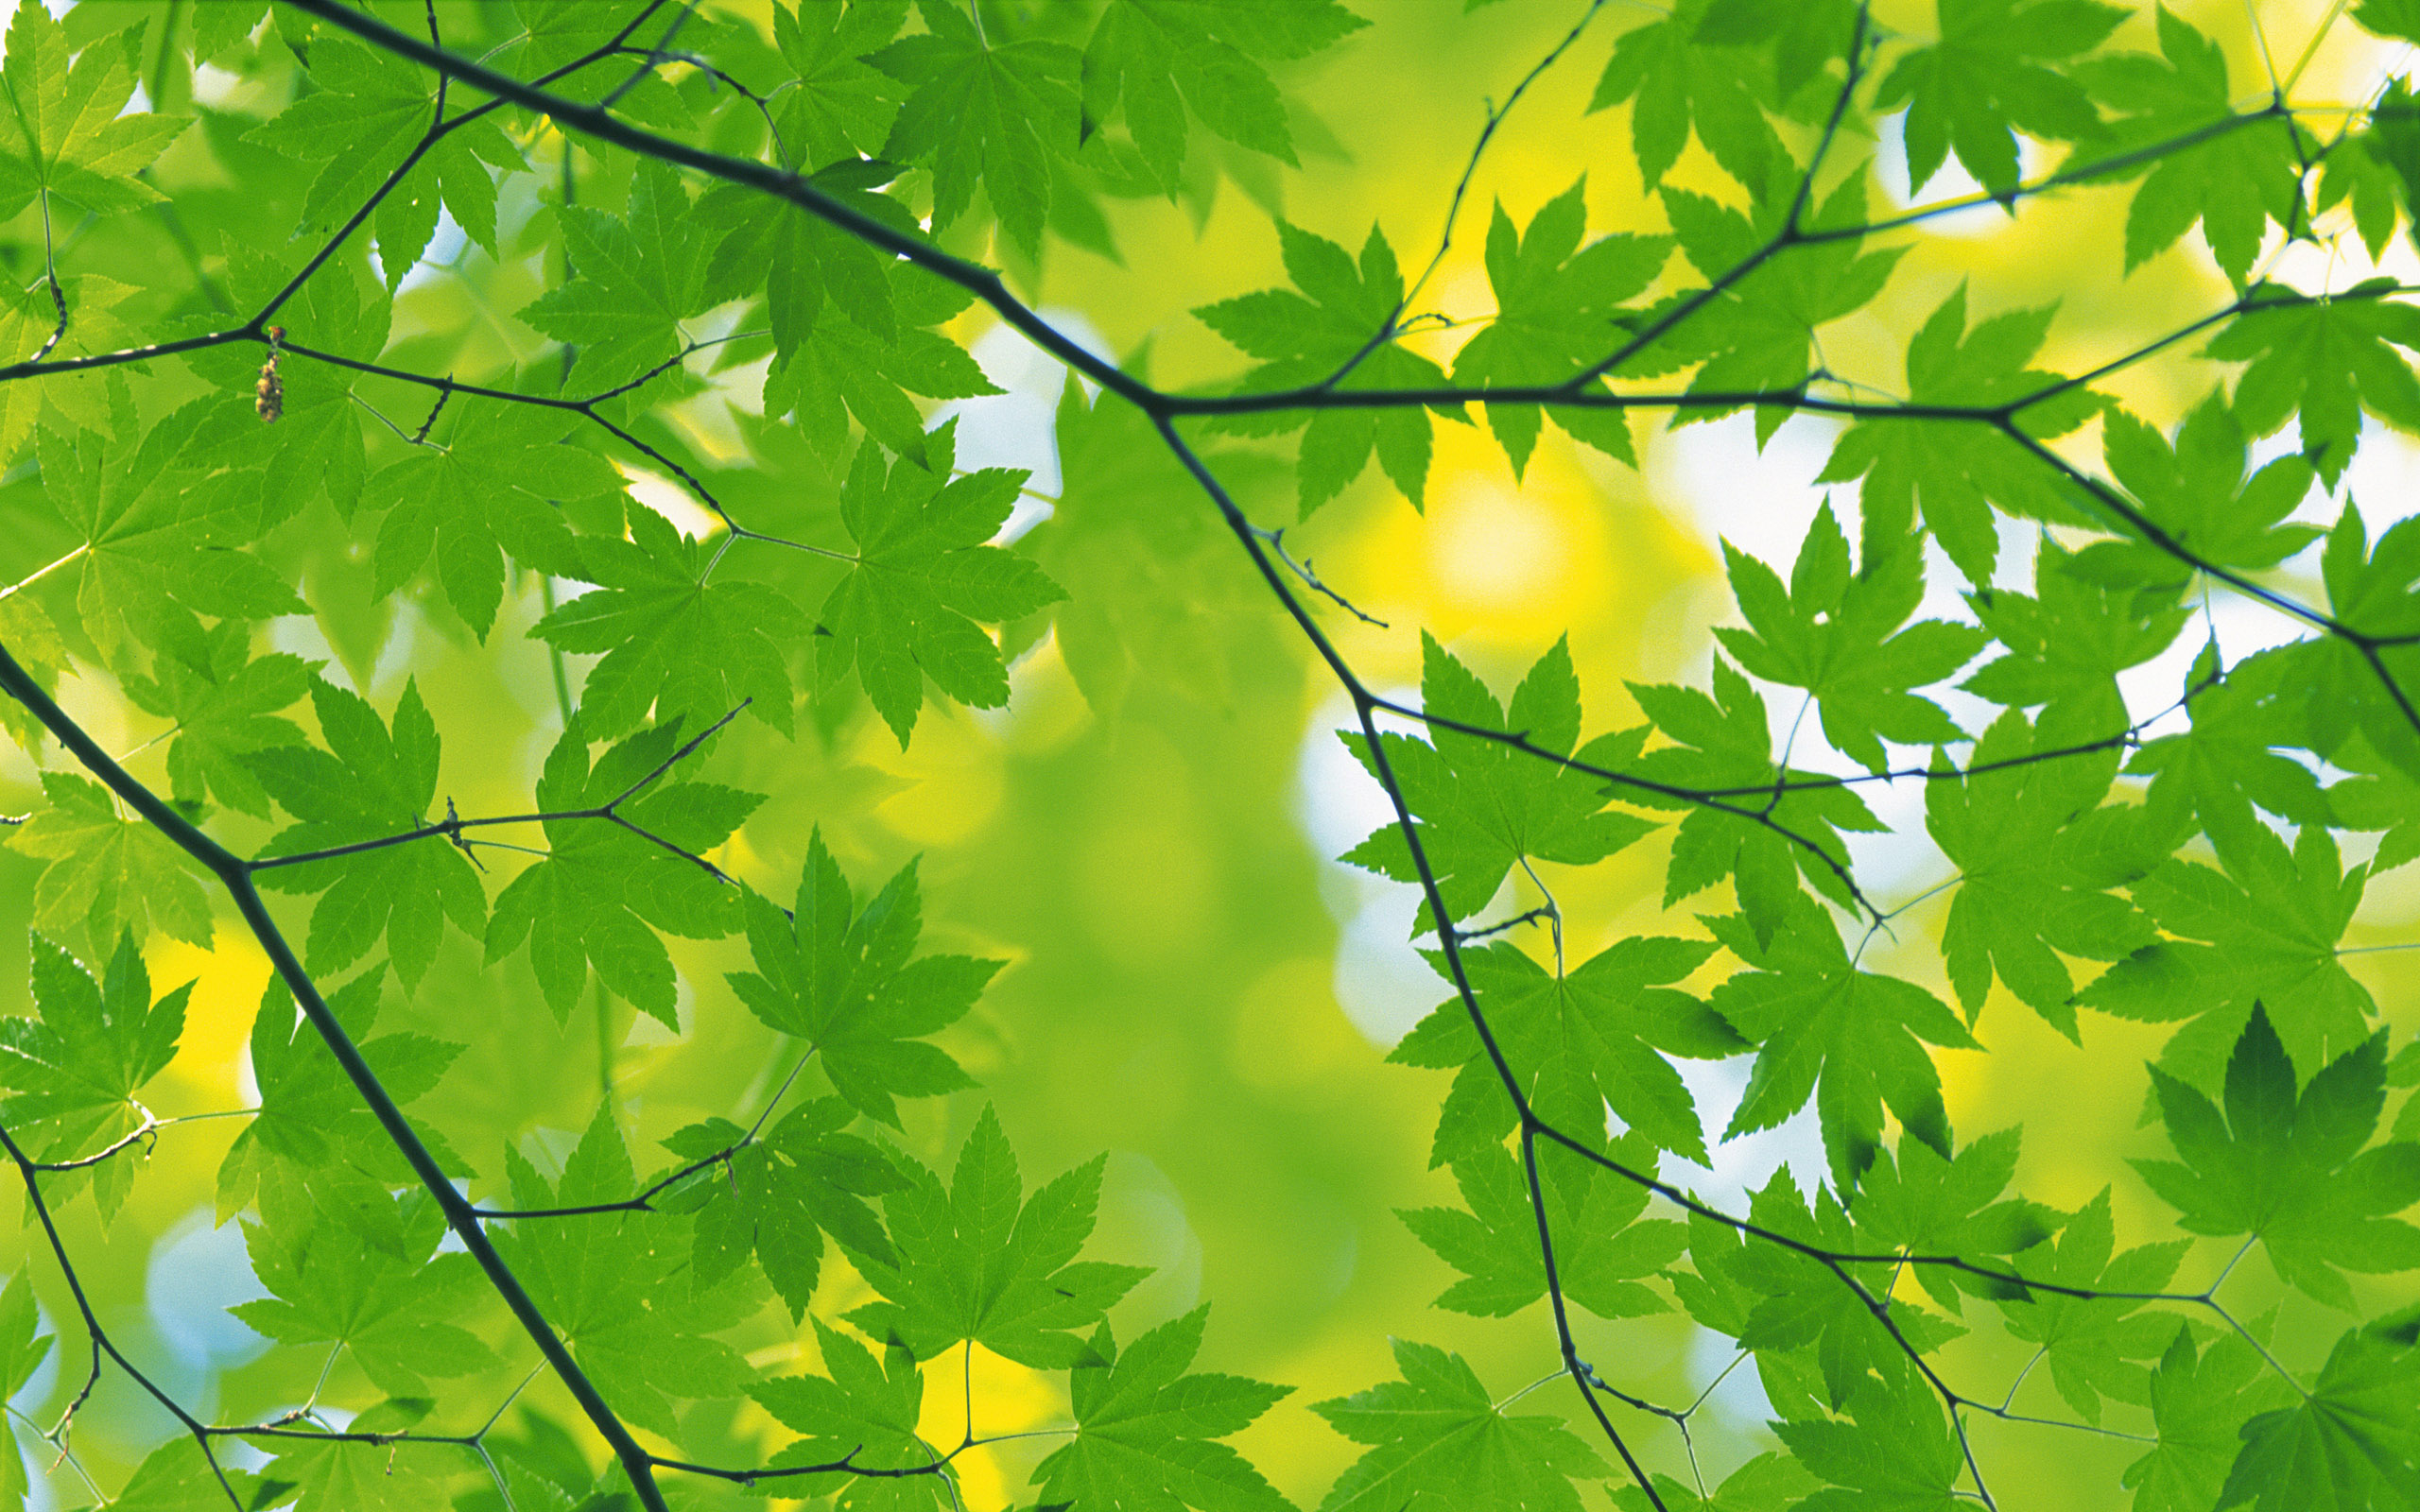 Tree Leaves Wallpaper